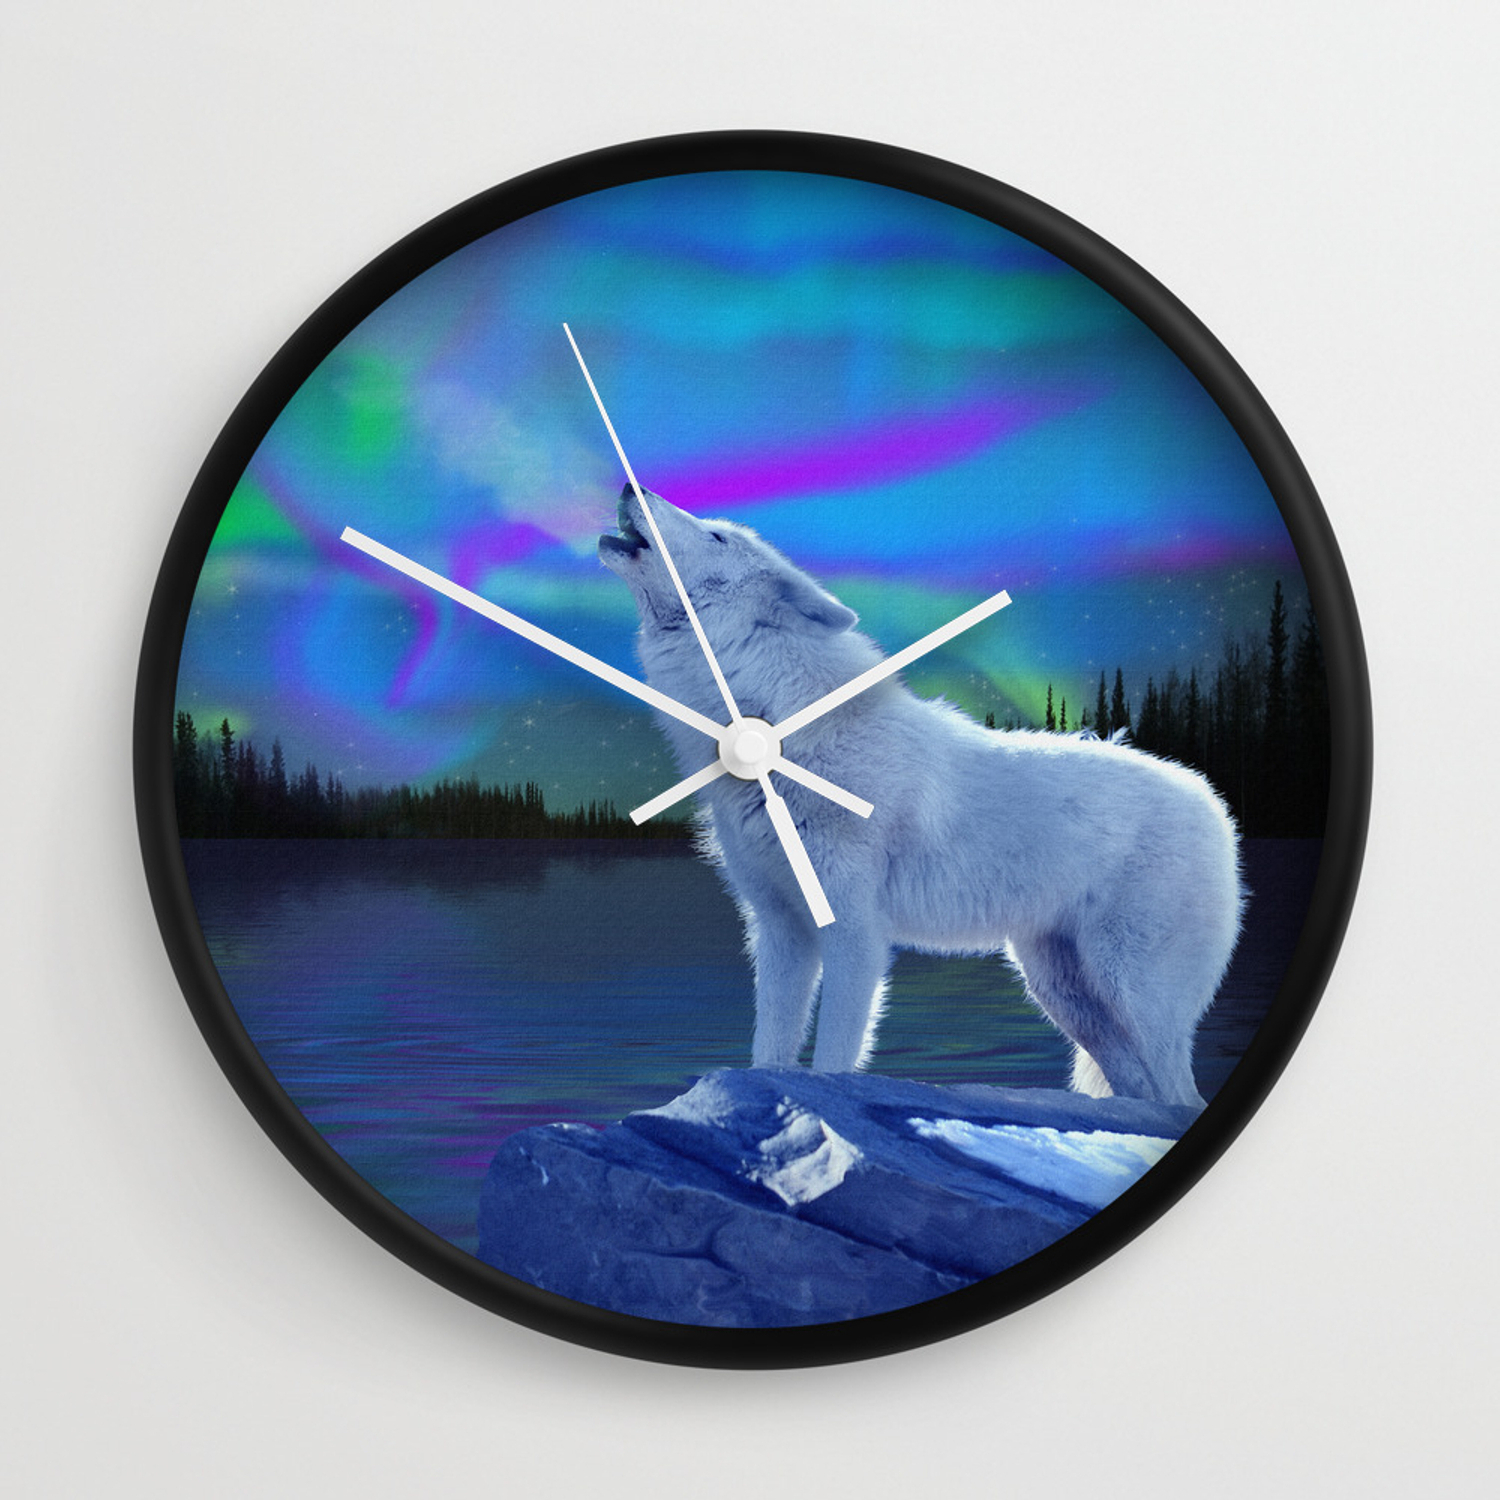 Well Known Aurora Sun Wall Decor Regarding Arctic Prayer – White Wolf And Aurora Wall Clockskyeryanevans (Gallery 18 of 20)